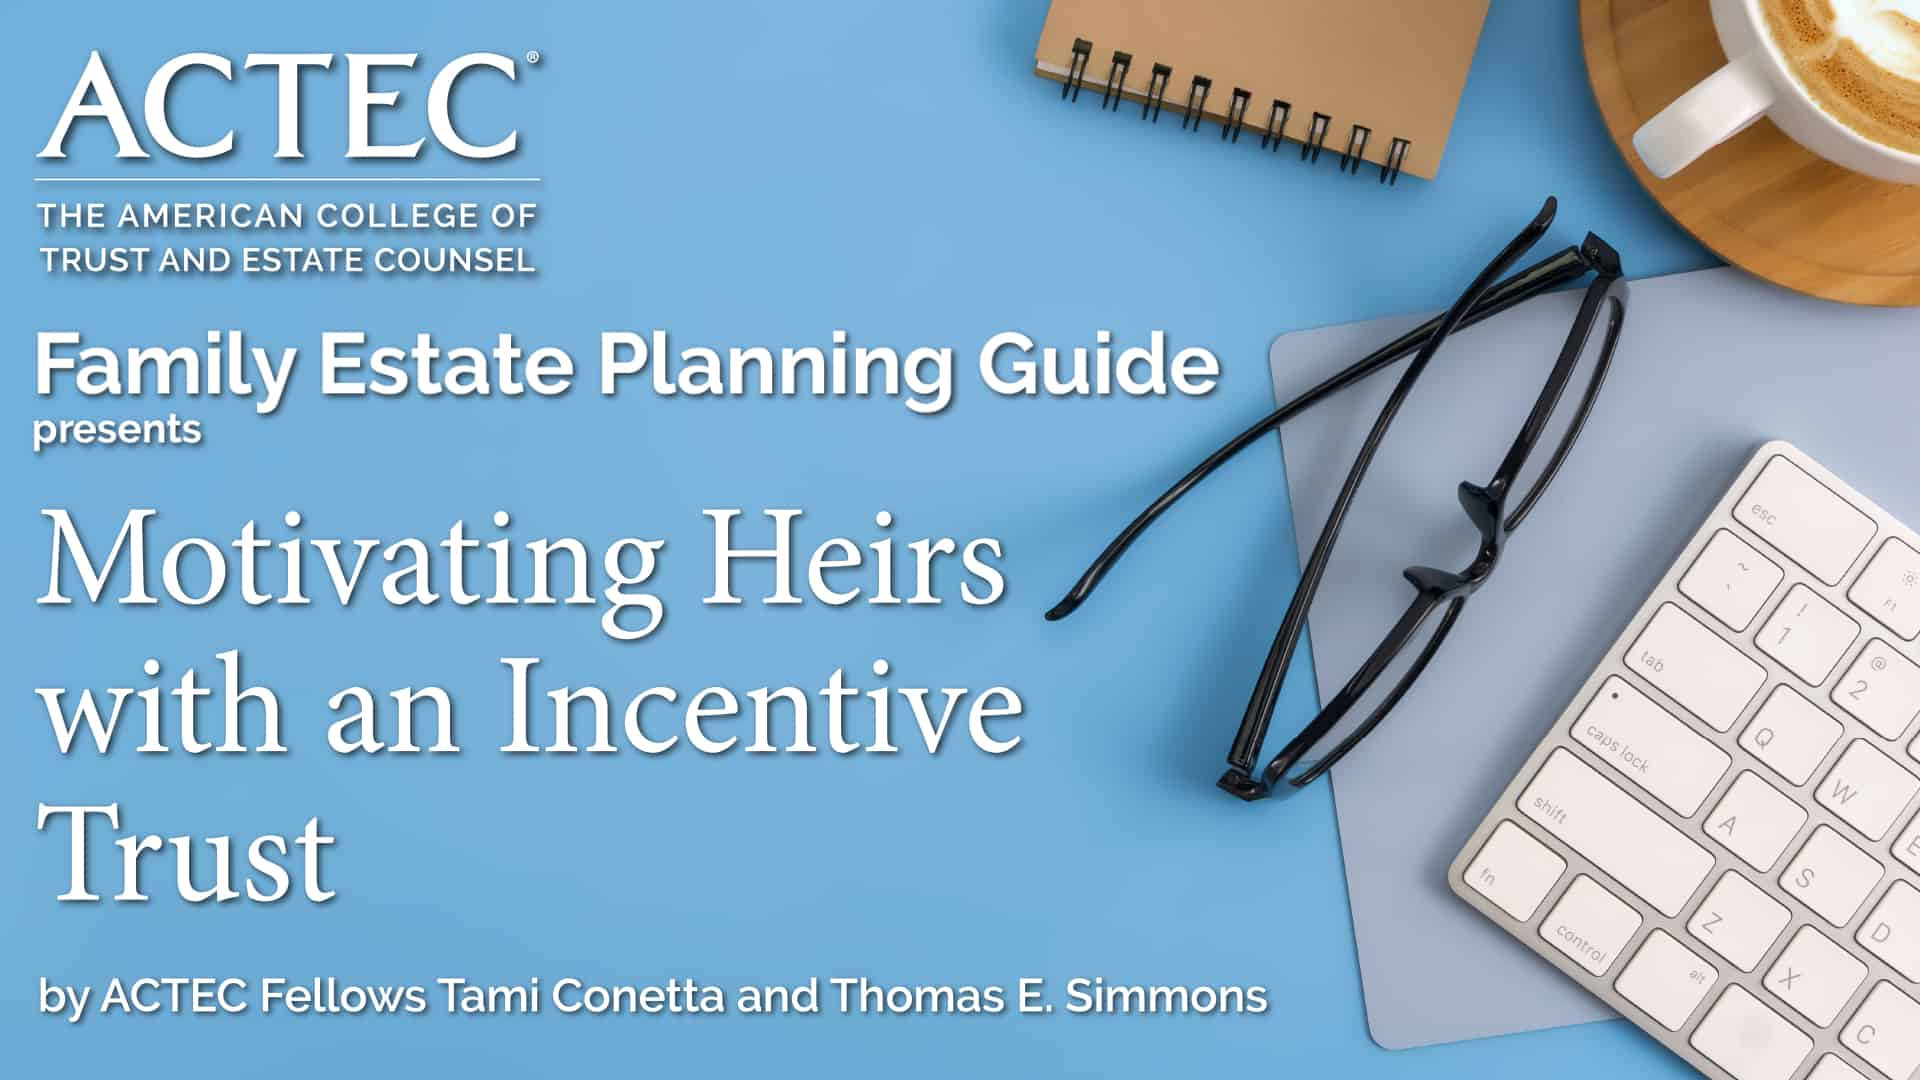 Motivating Heirs with an Incentive Trust